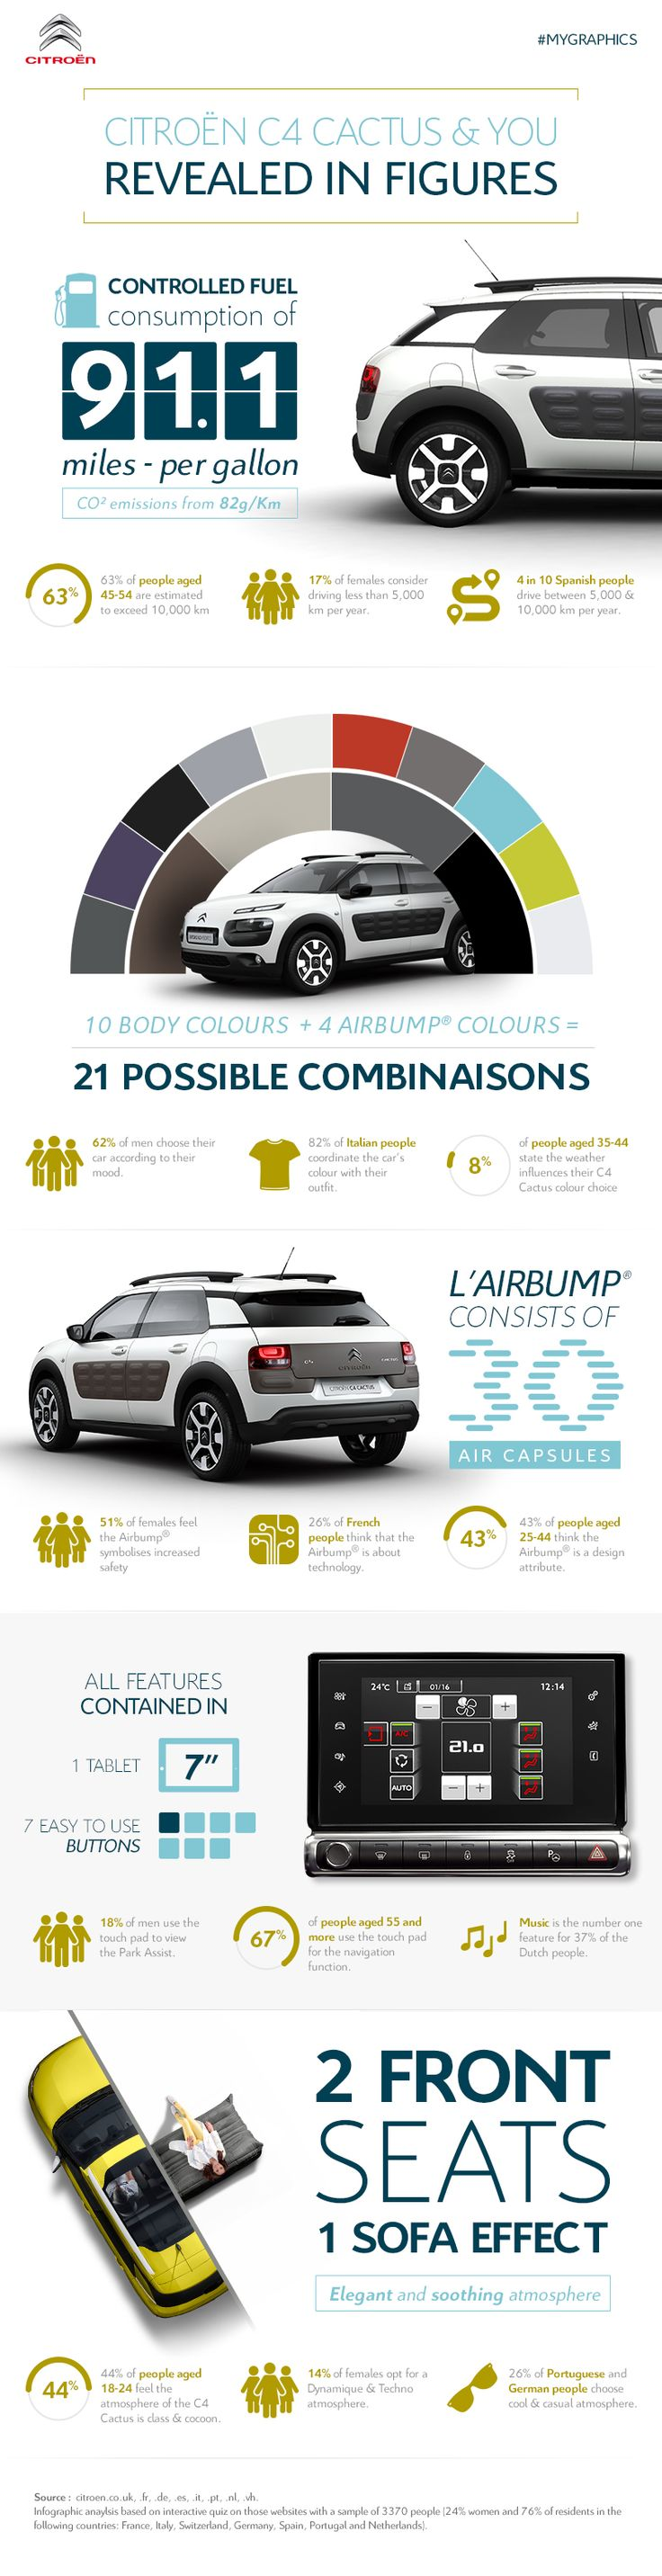 Fun facts about the Citroën C4 Cactus and you ! #Citroën #C4Cactus #Infographic